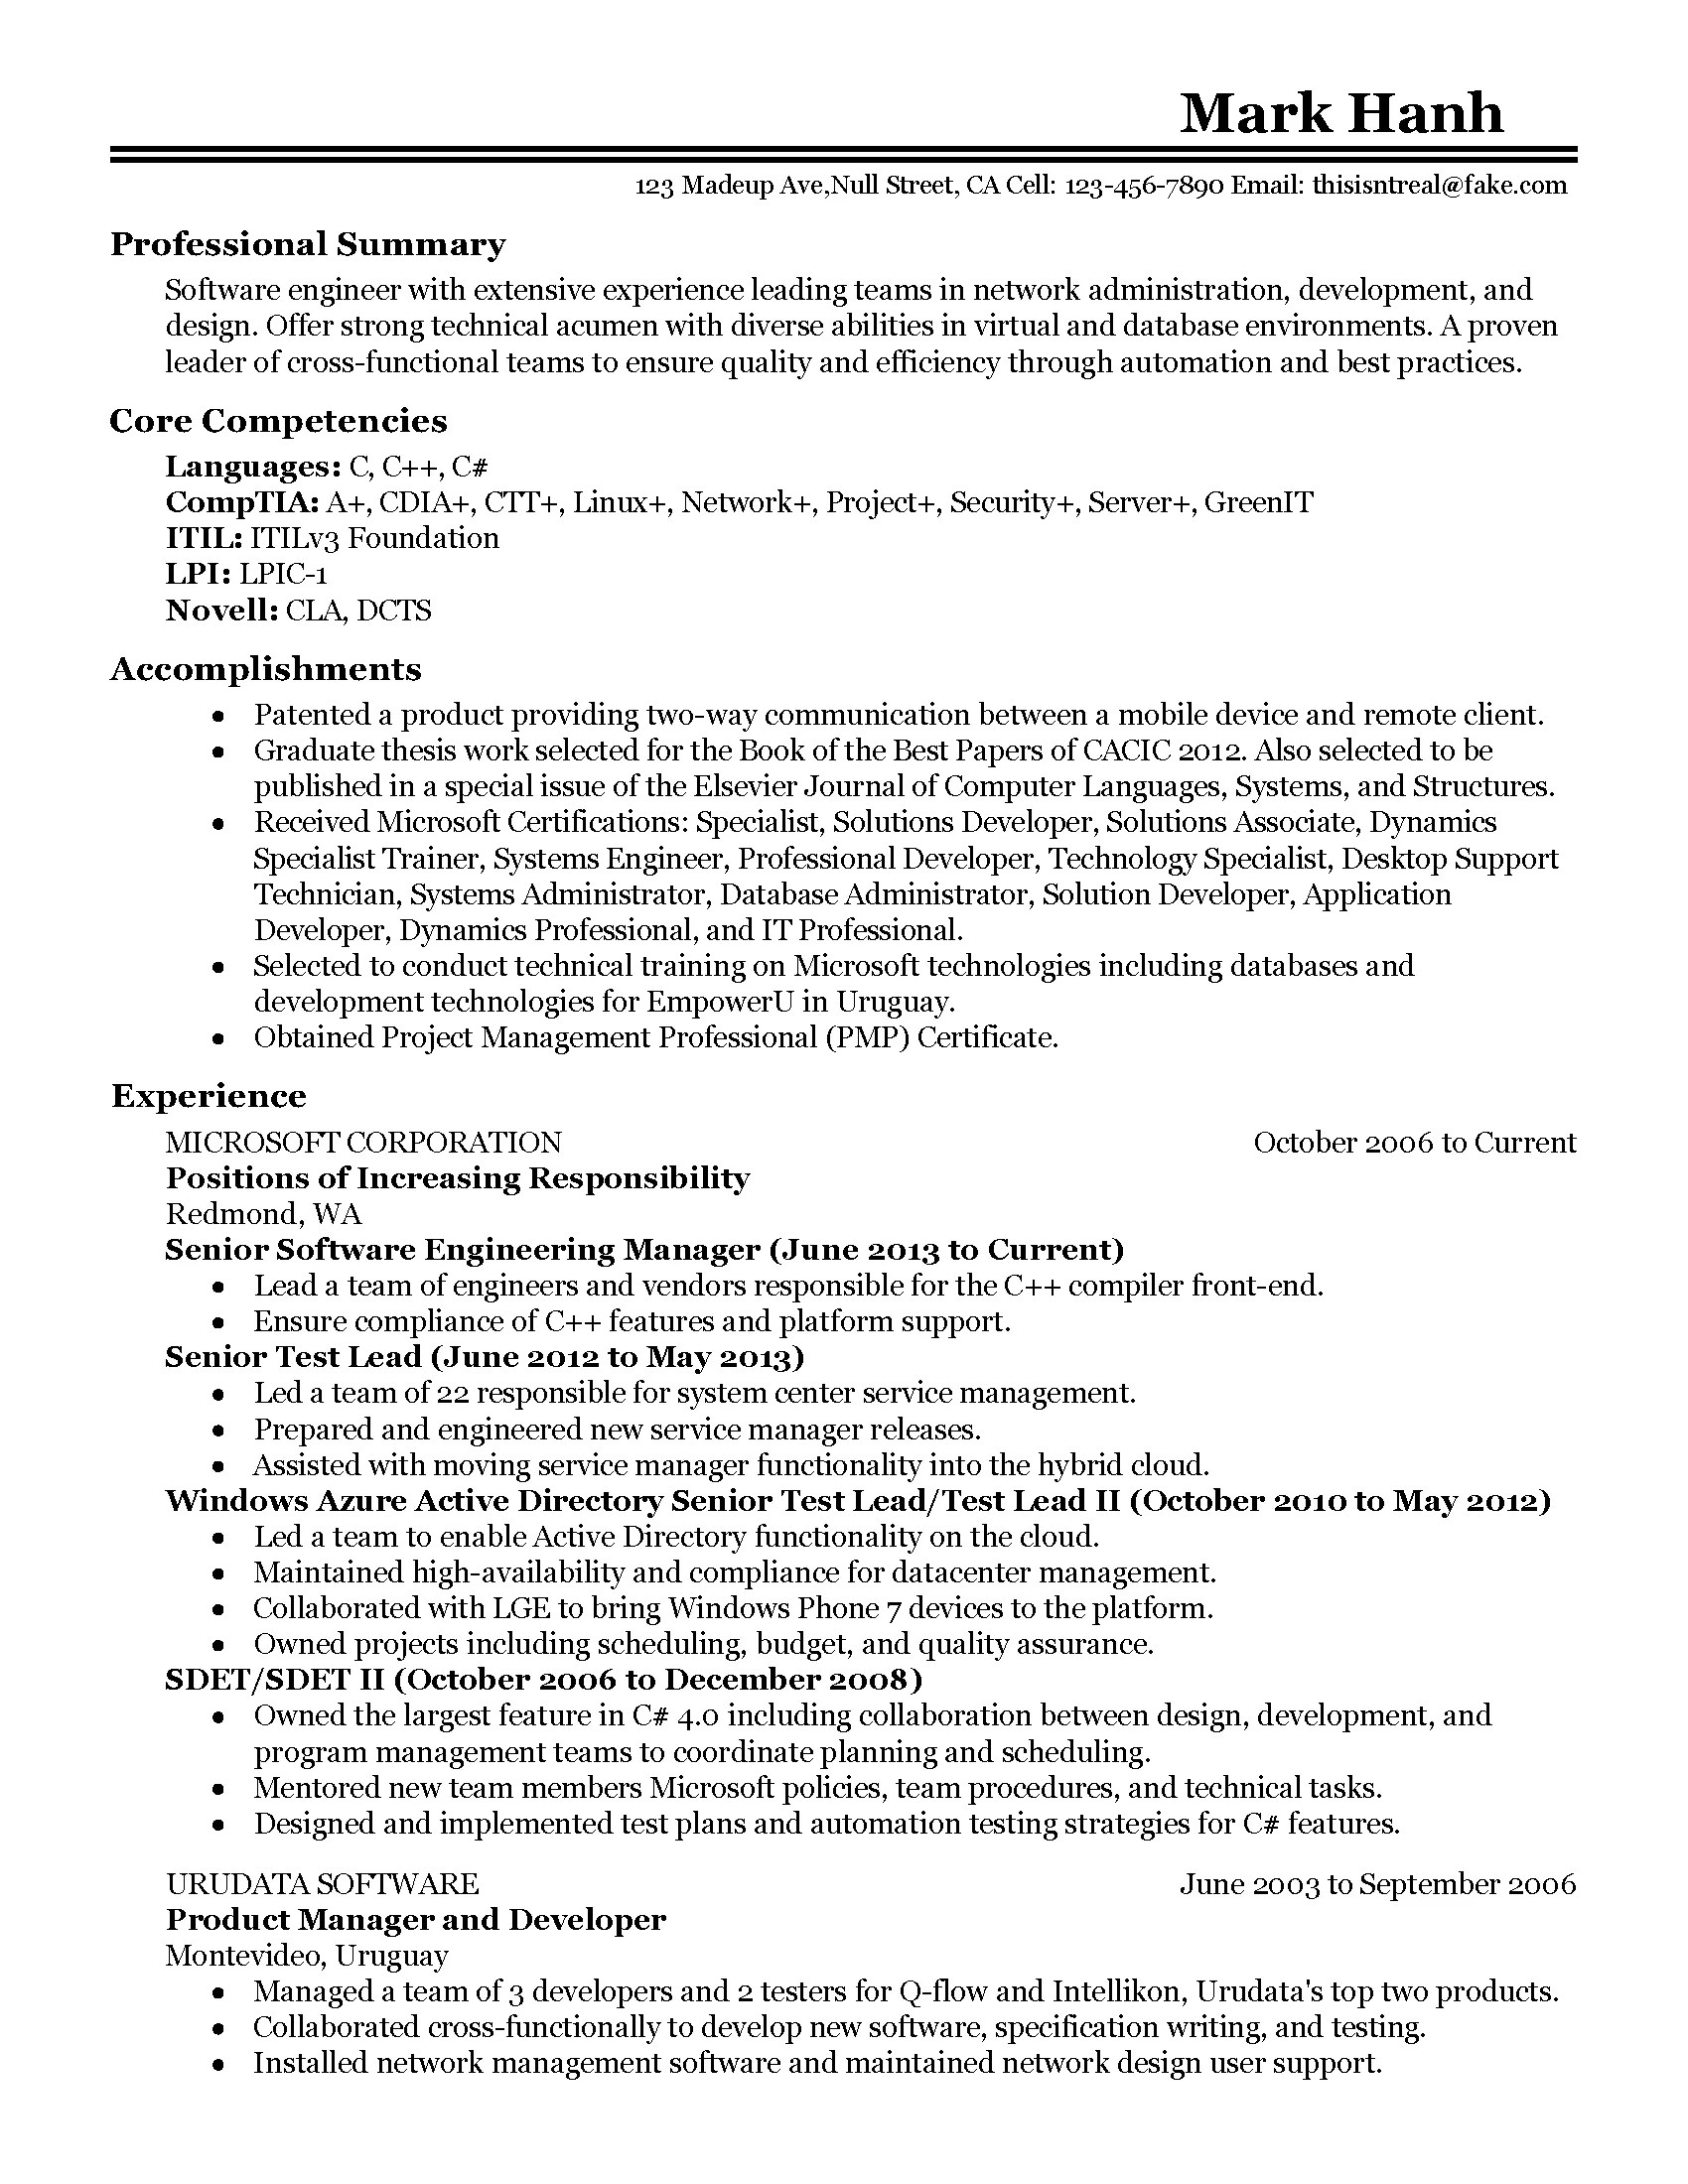 Amazing Offshore Accounting Resume Pictures Top Resume Revision